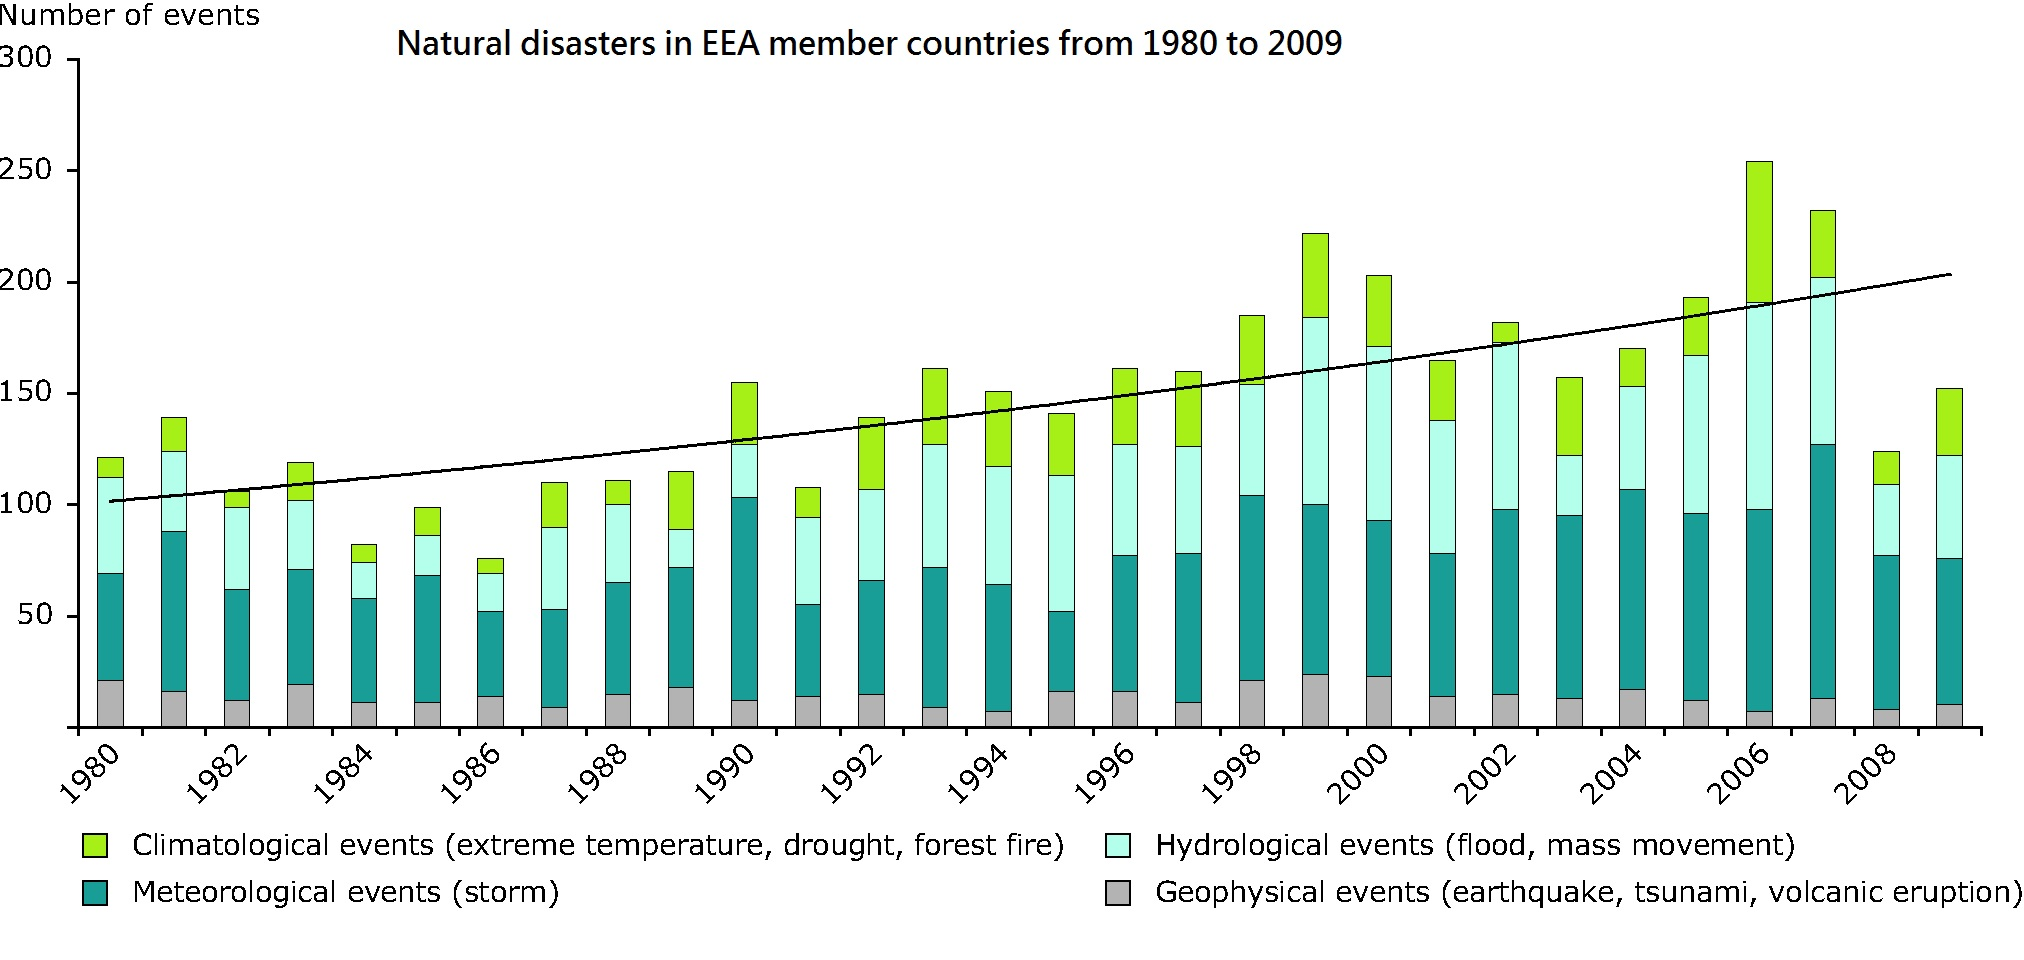 natural disasters in European Economic Area member countries 1980 to 2009